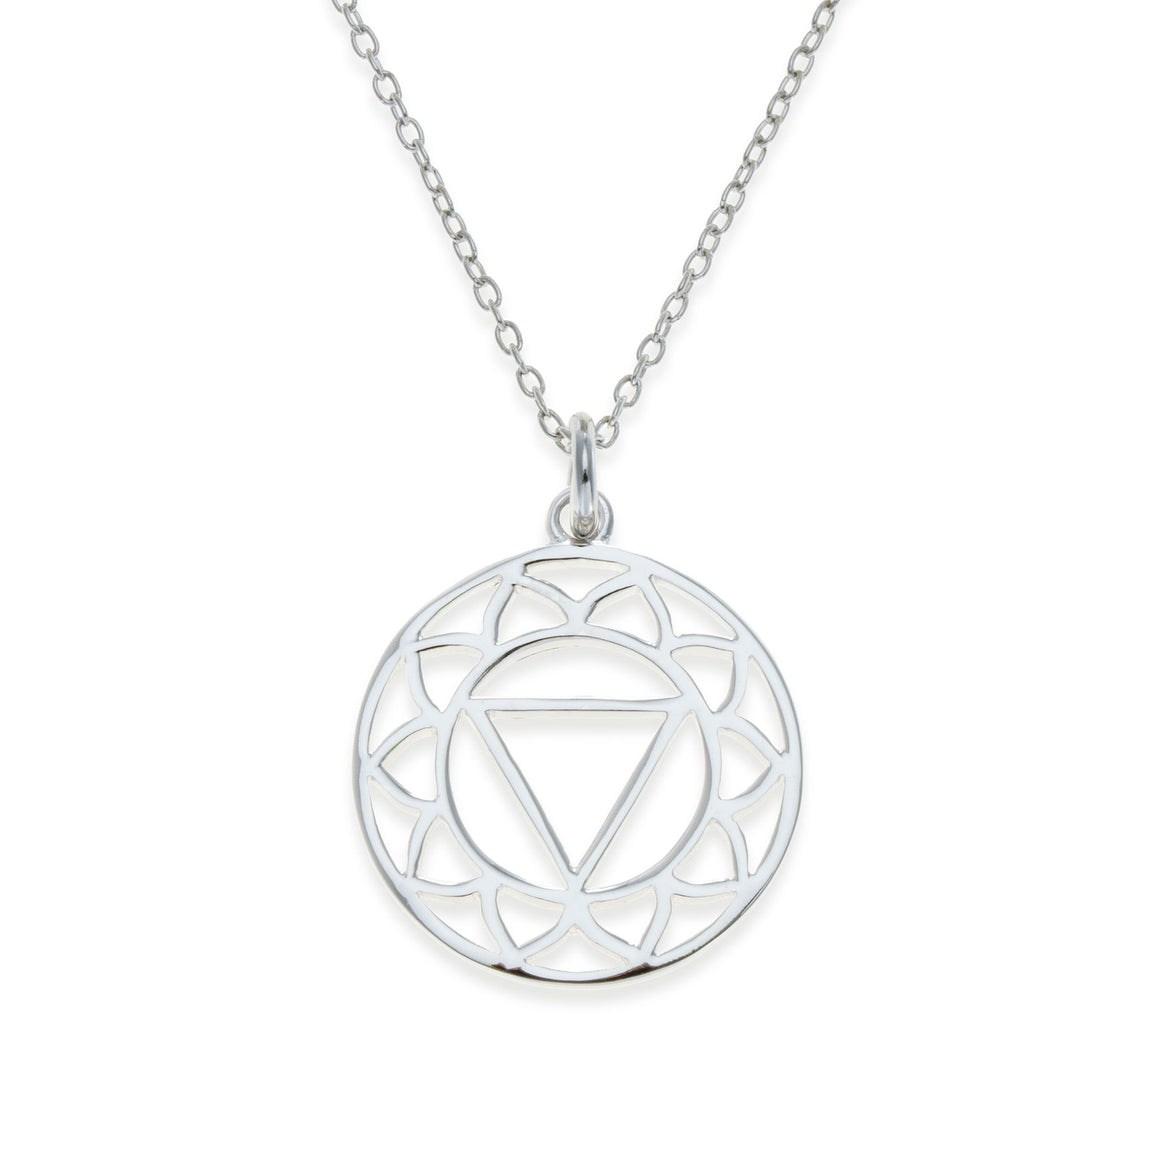 Sterling Silver Solar Plexus Chakra Necklace | Kith & Kin | Spiritual Collection